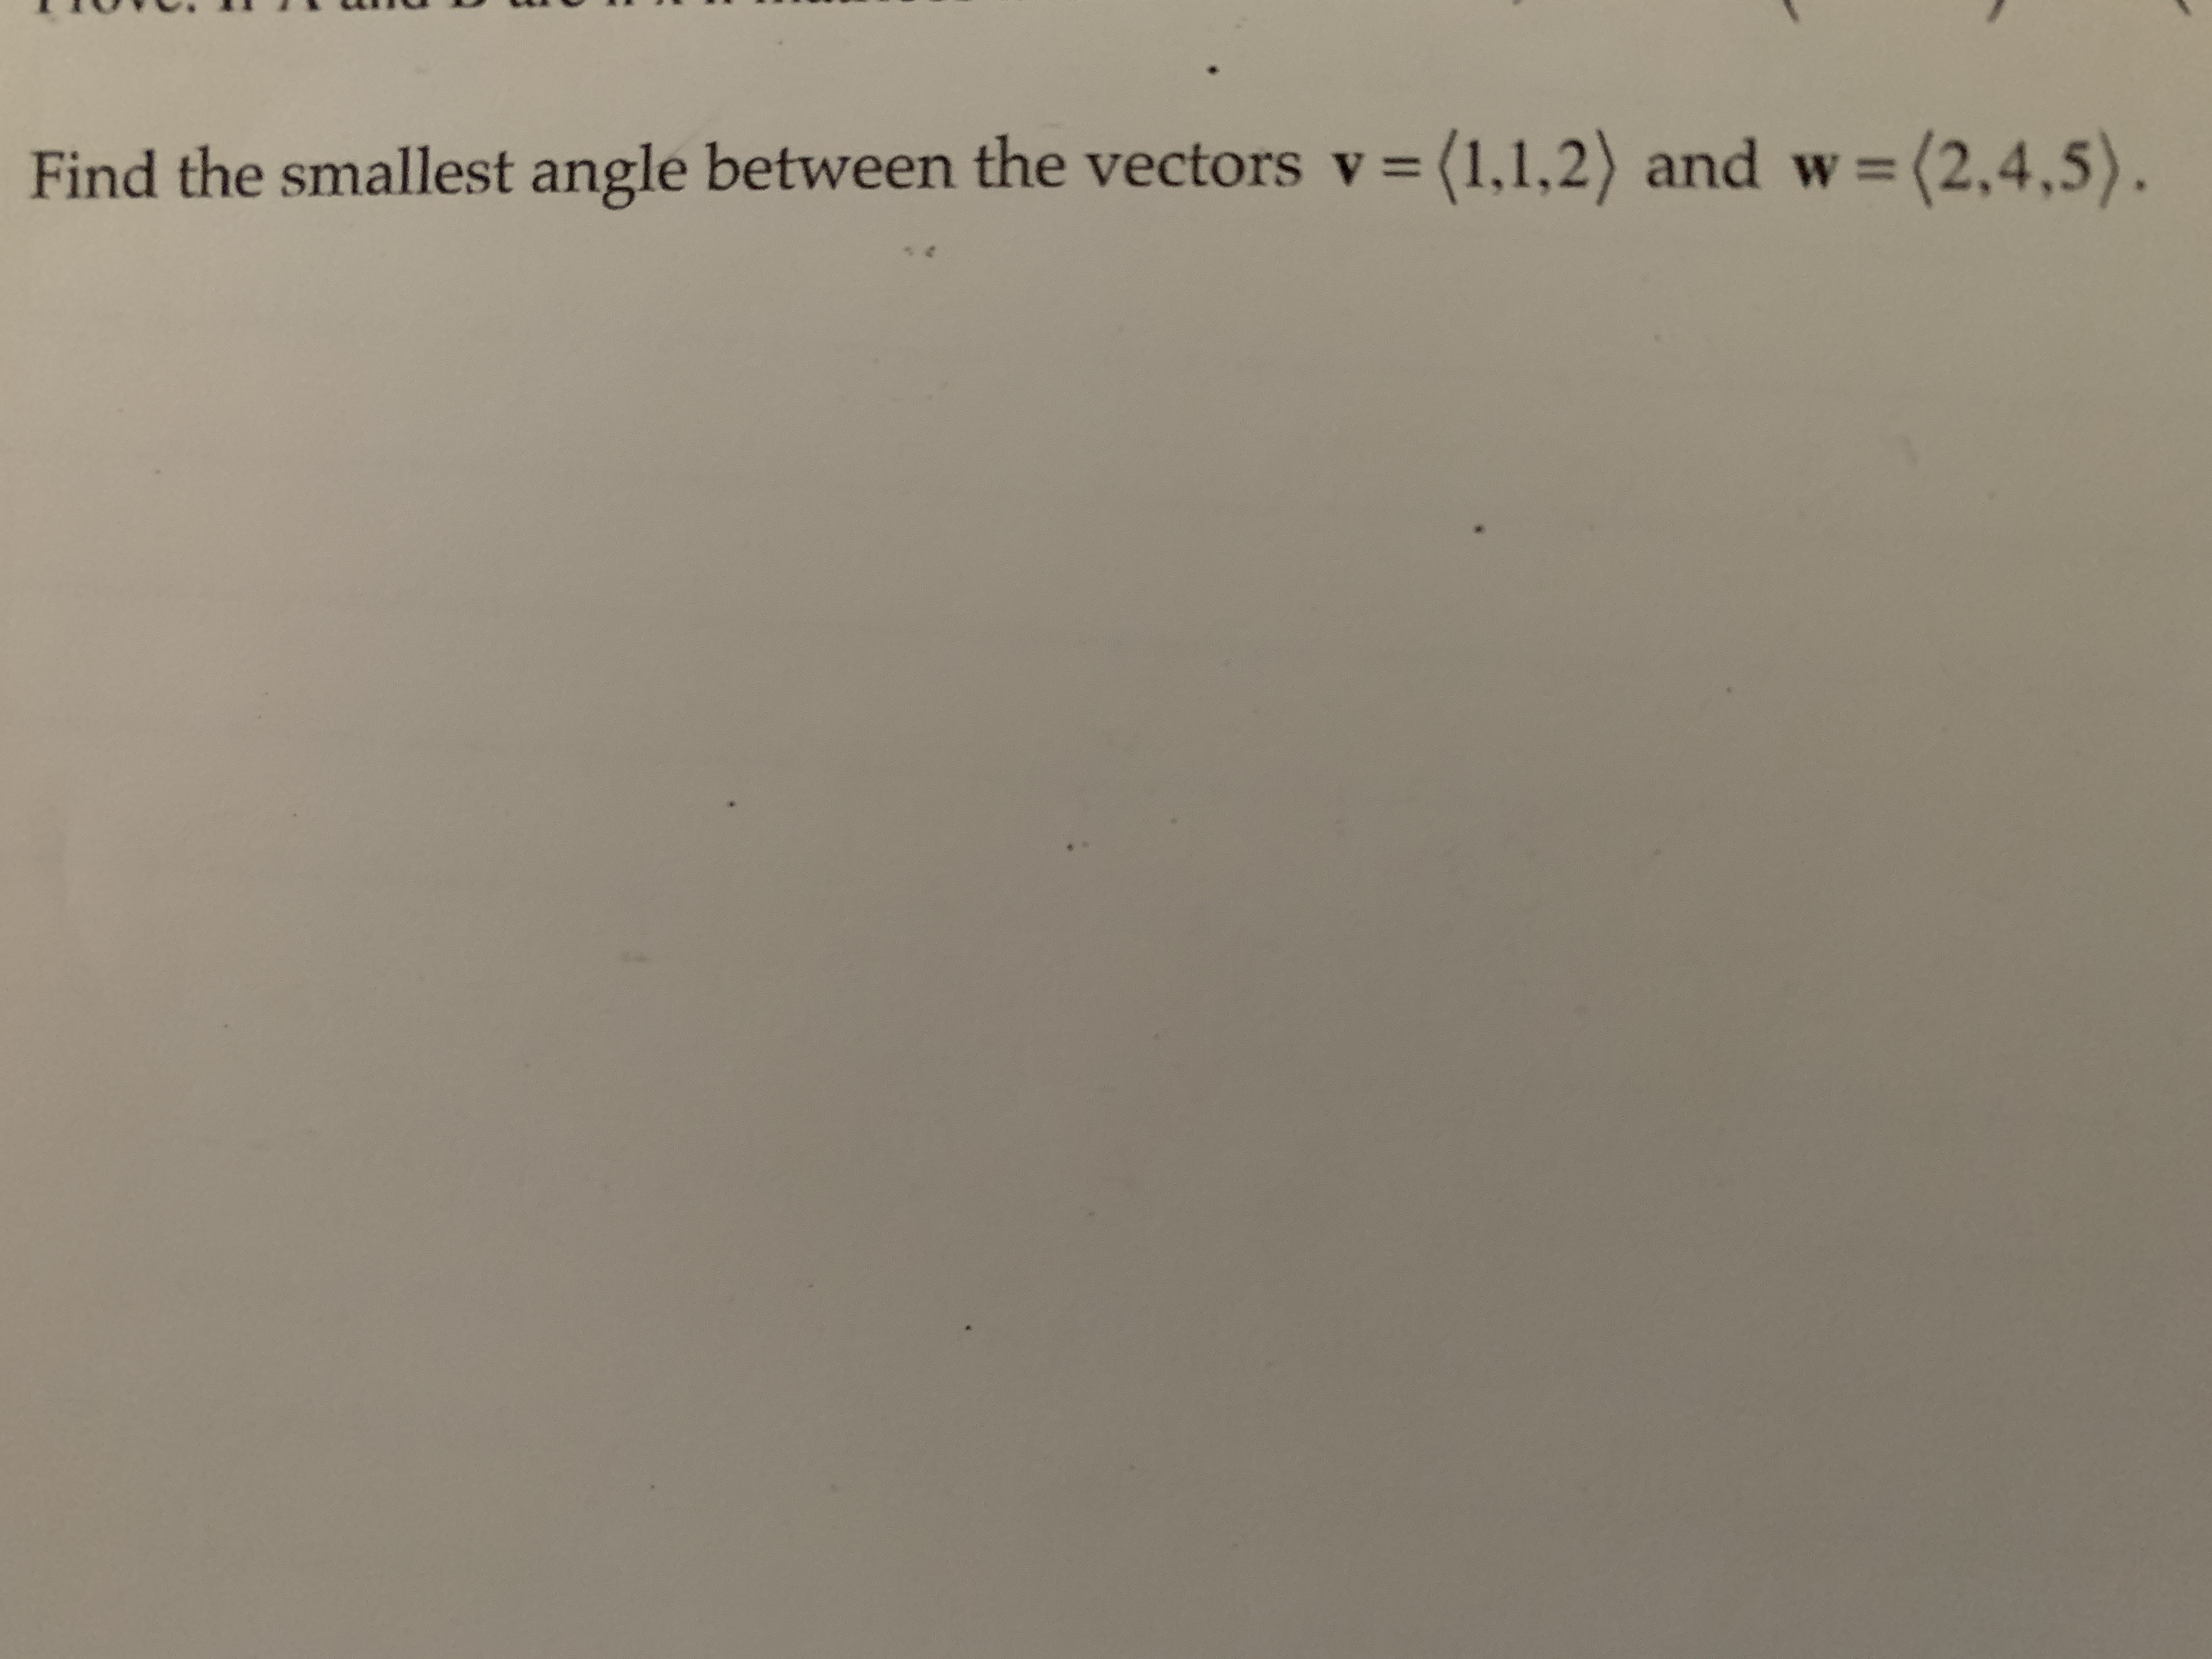 Find the smallest angle between the vectors v = (1,1,2) and w= (2,4,5).